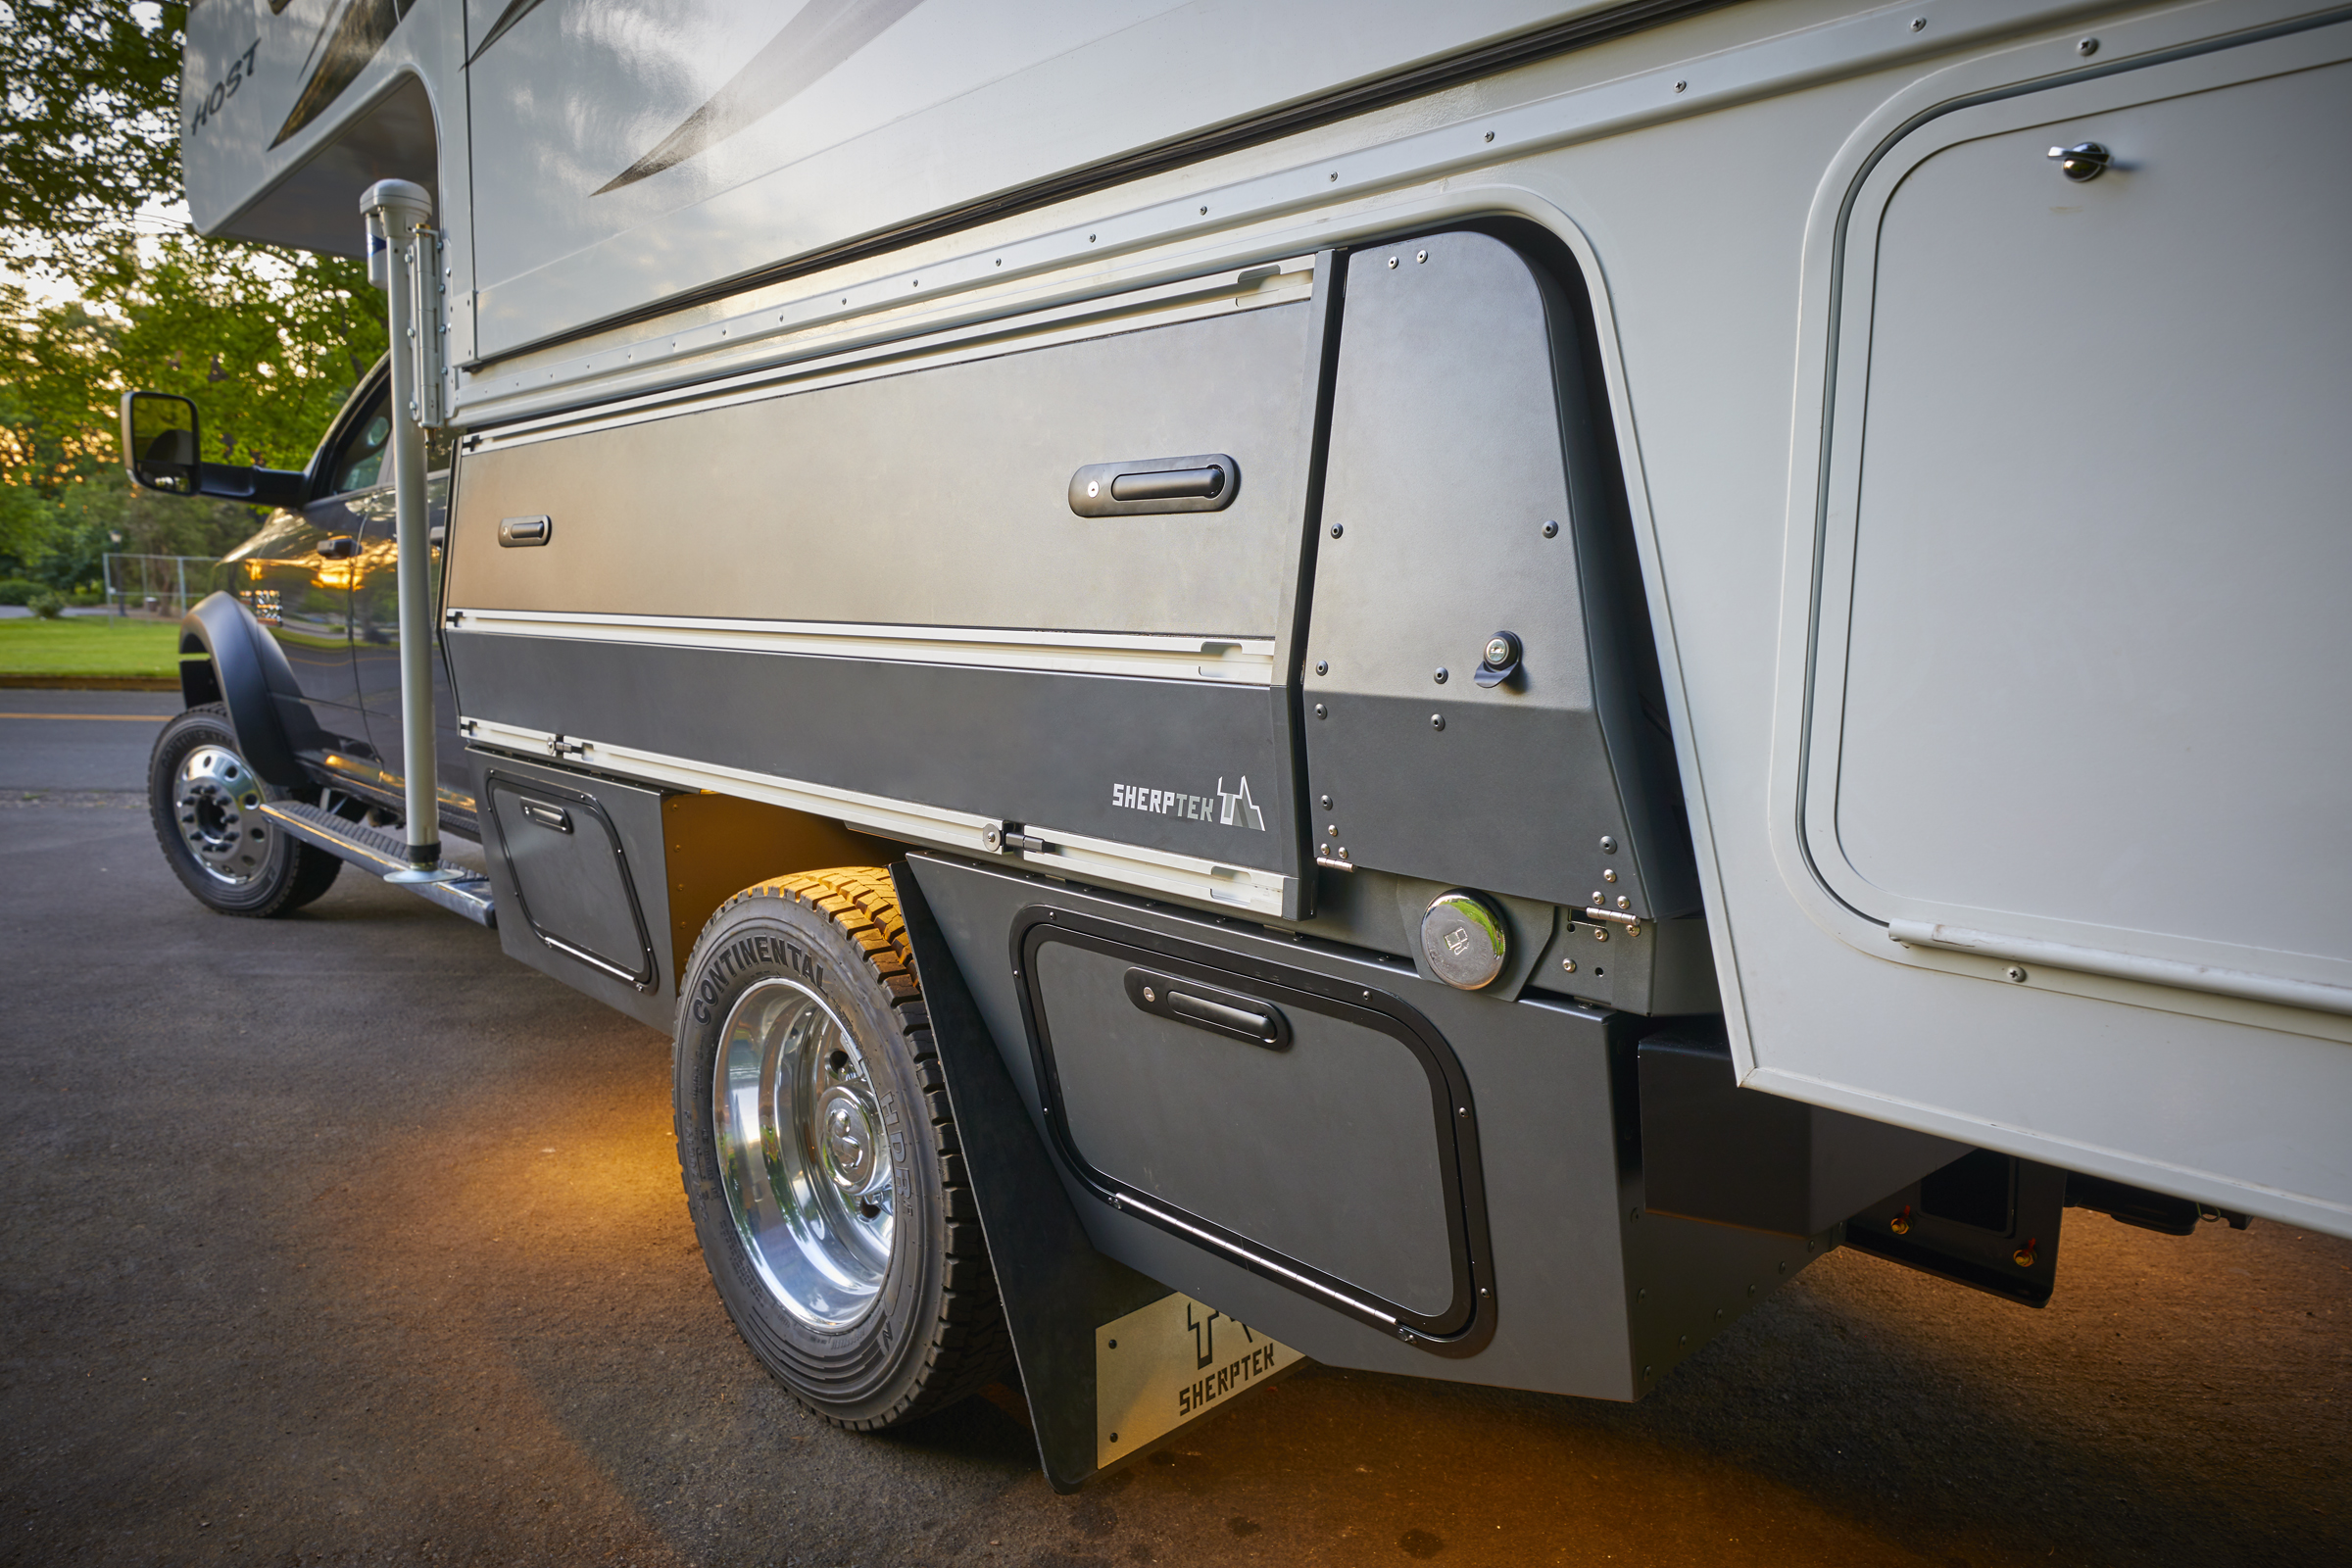 Ram 4500 chassis cab plus HOST Mammoth truck camper with SherpTek truck bed replacement system.